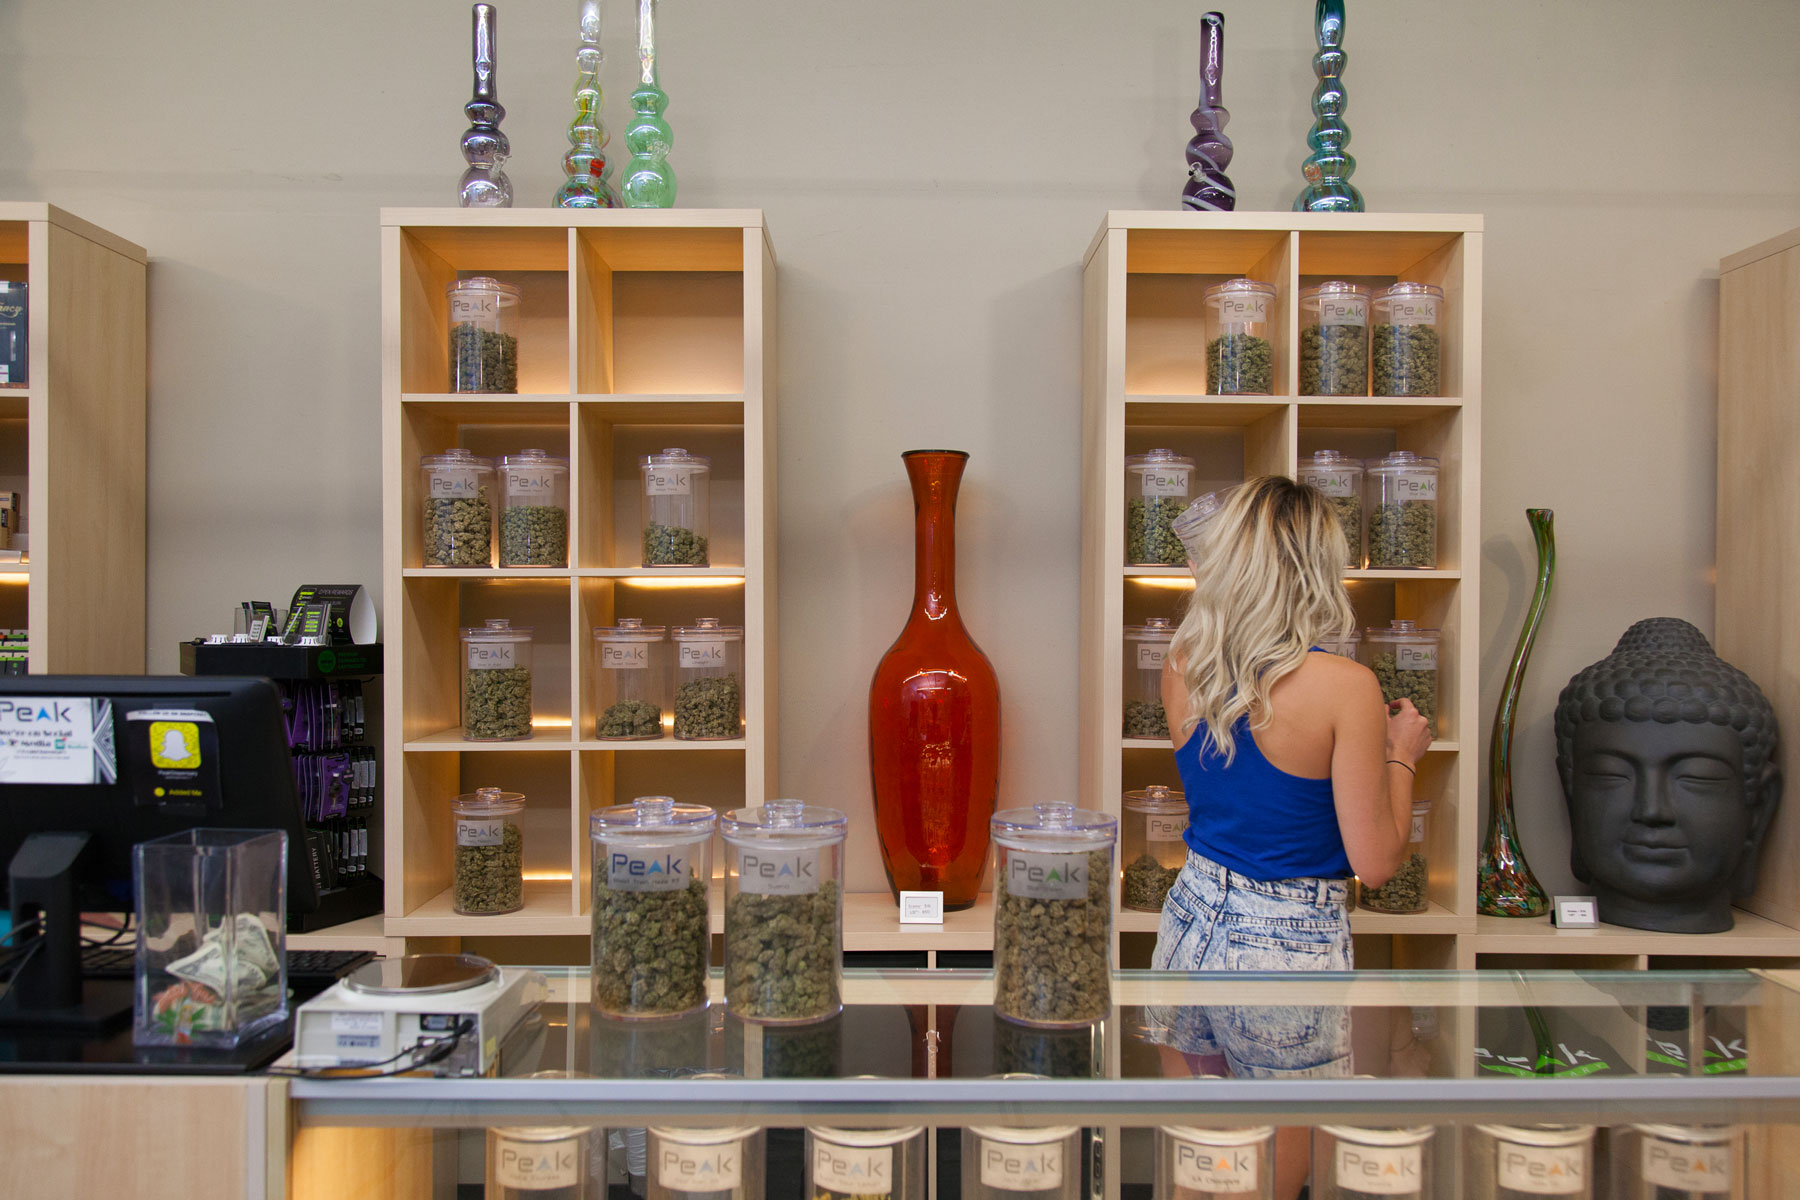 Denver pot shop with the most cannabis infused products and flower.